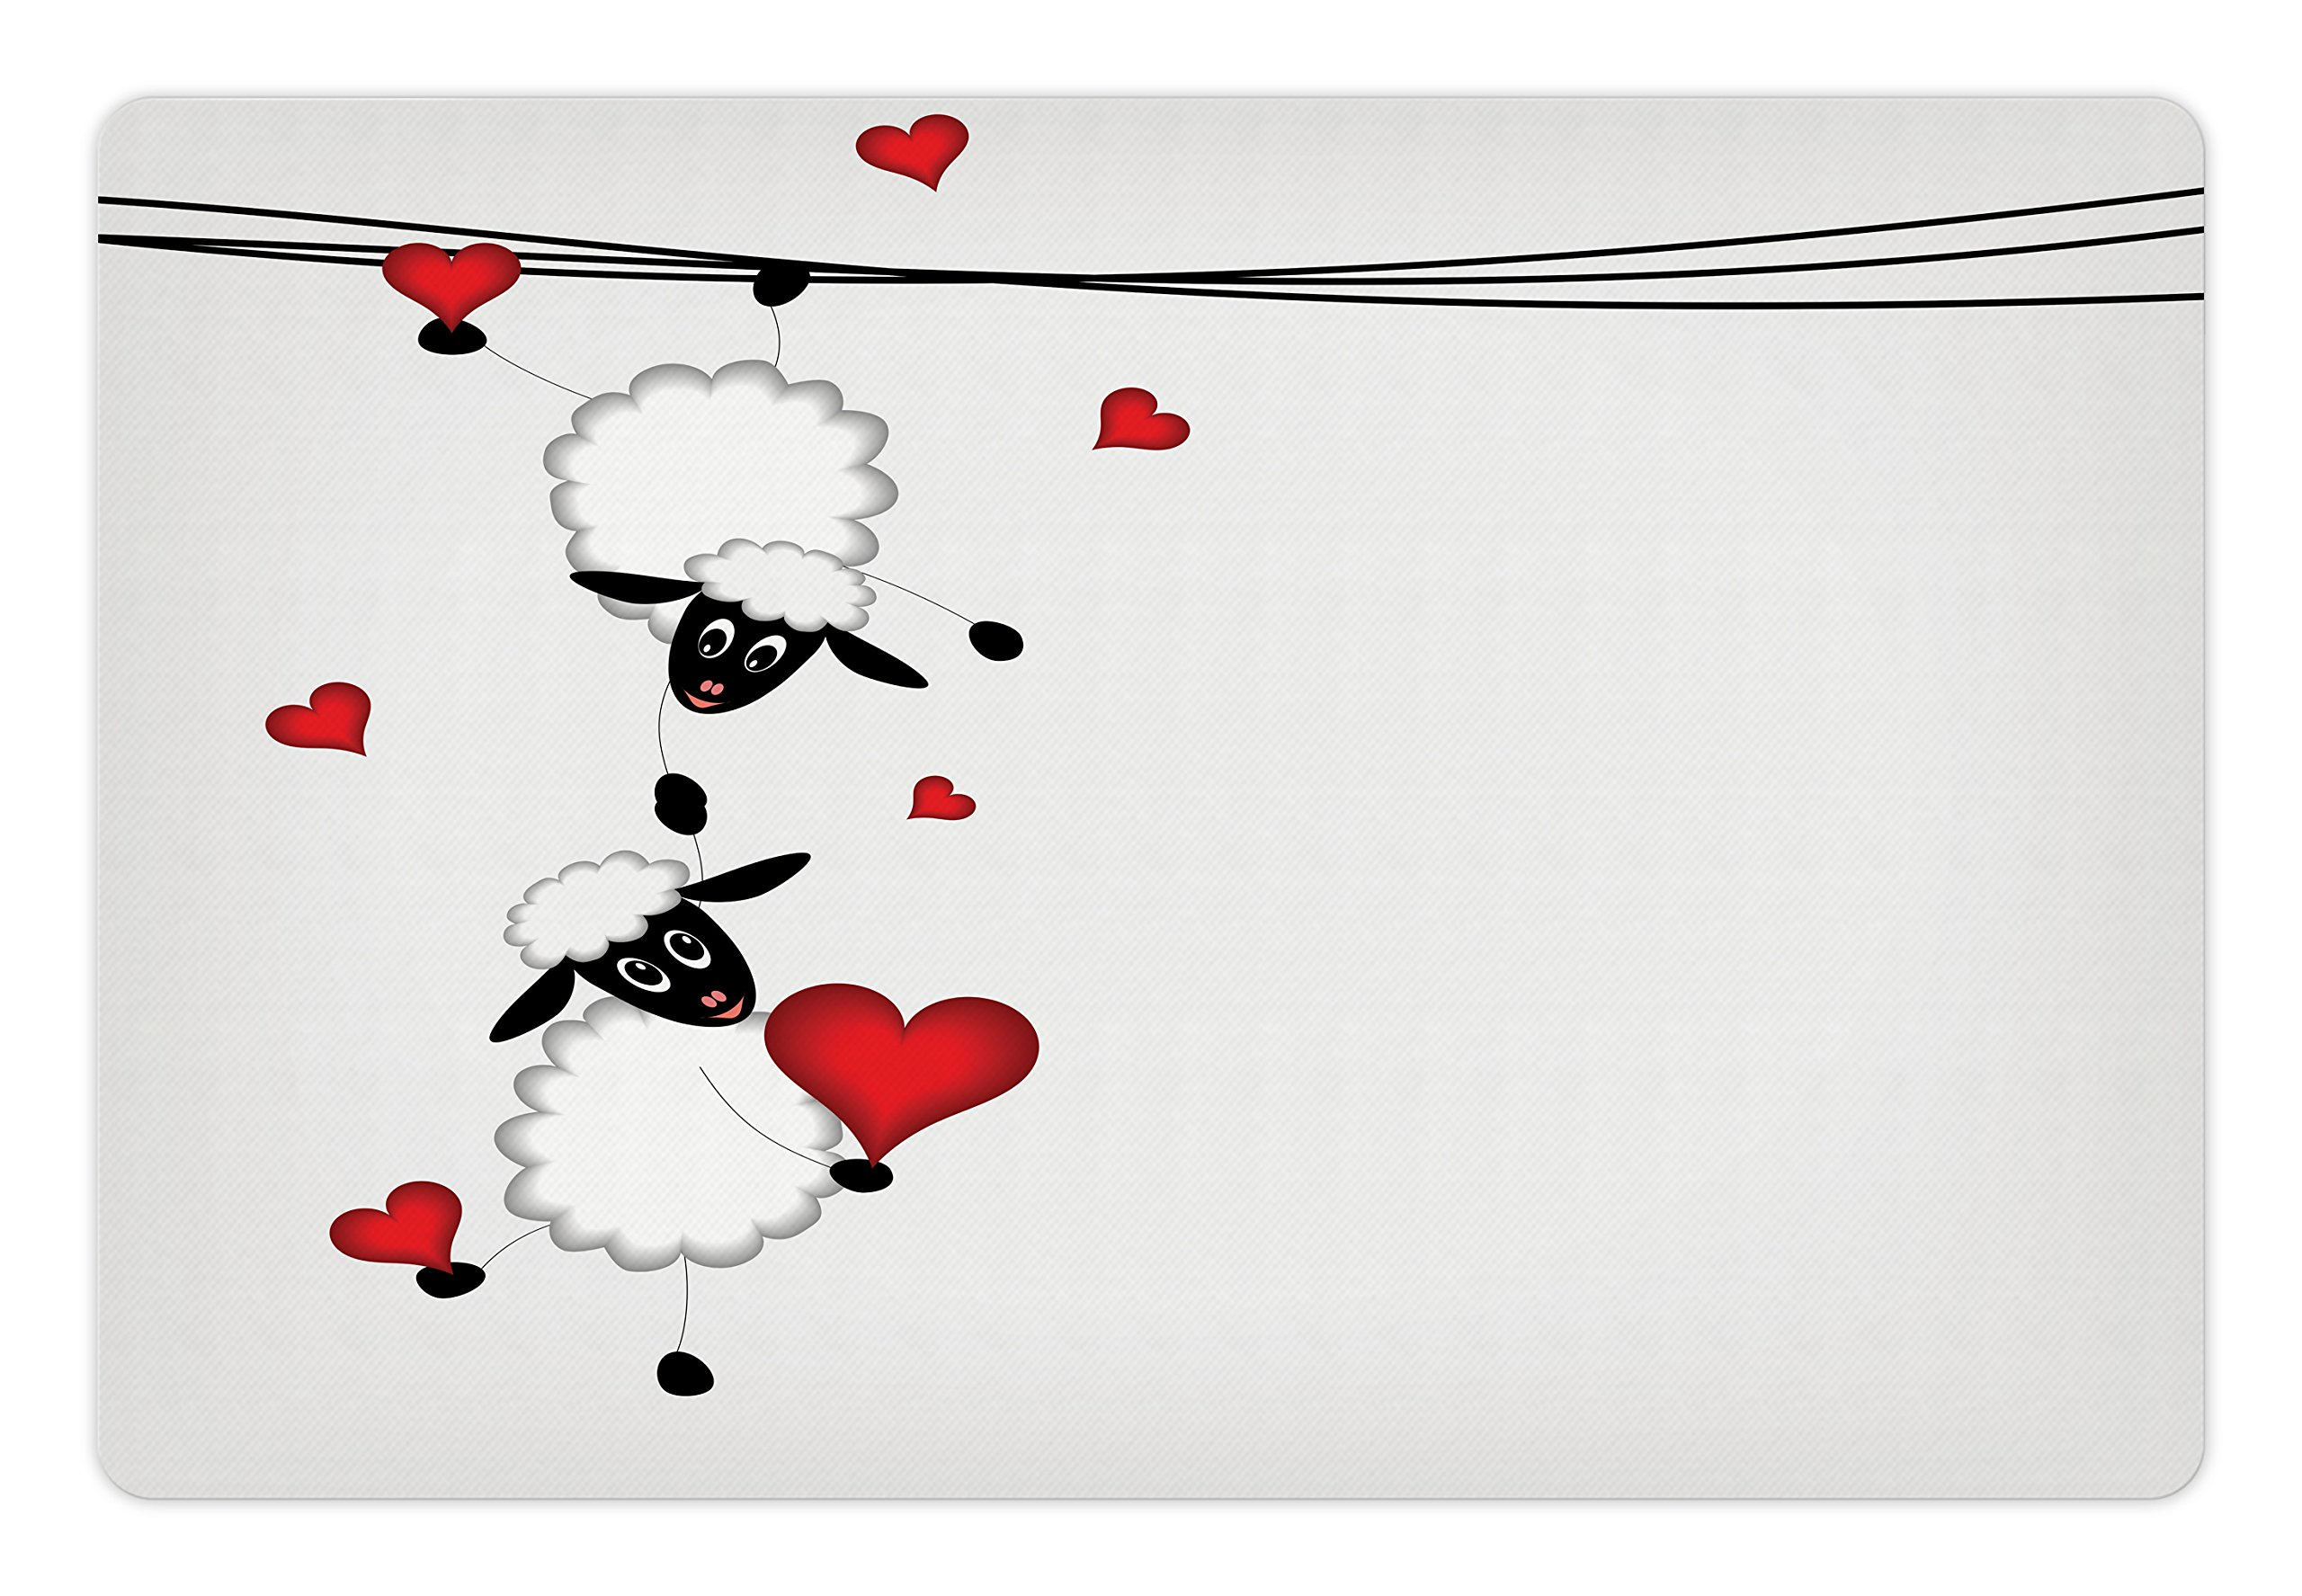 Ambesonne Animal Pet Mat for Food and Water, Sheep Couple with Heart Shapes in Love Valentine's Hanging On Fun Comic Cartoon, Rectangle Non-Slip Rubber Mat for Dogs and Cats, Red White Black,